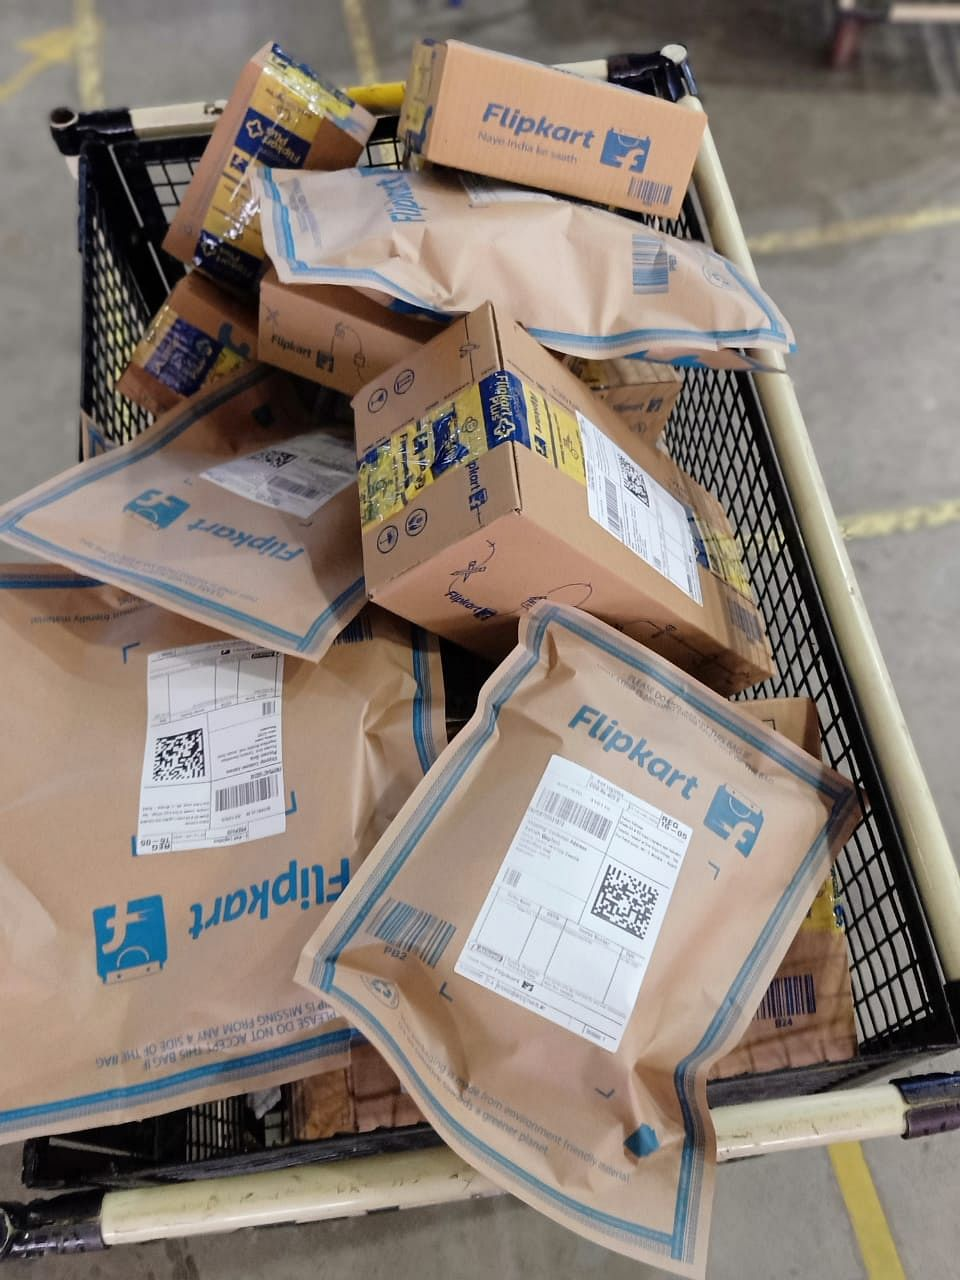 Flipkart orders ready to ship in recyclable paper bags